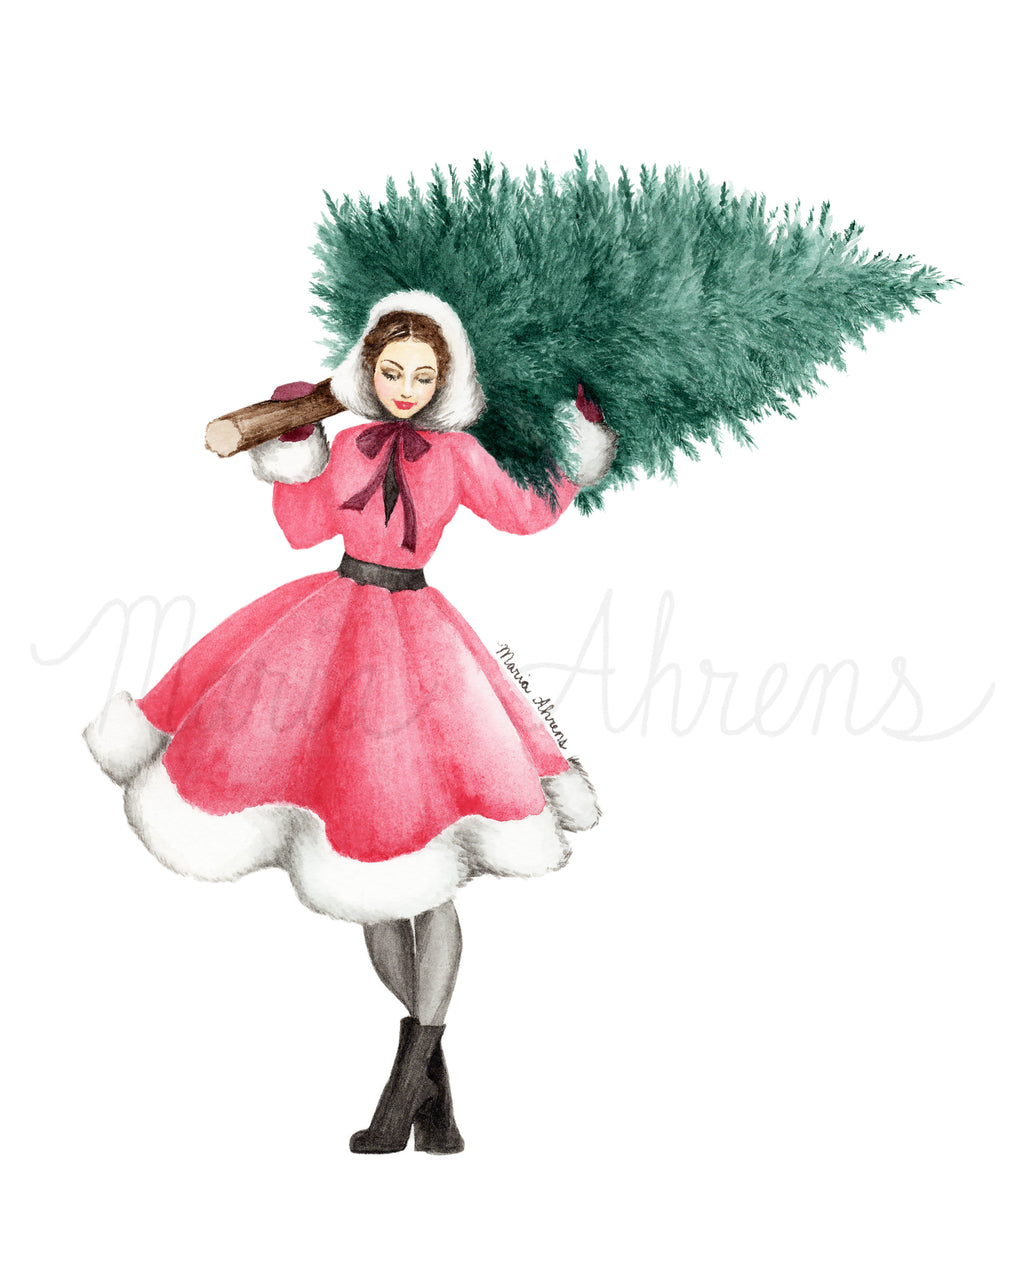 Christmas Tree Limited Edition Printable Watercolor Fashion Illustration